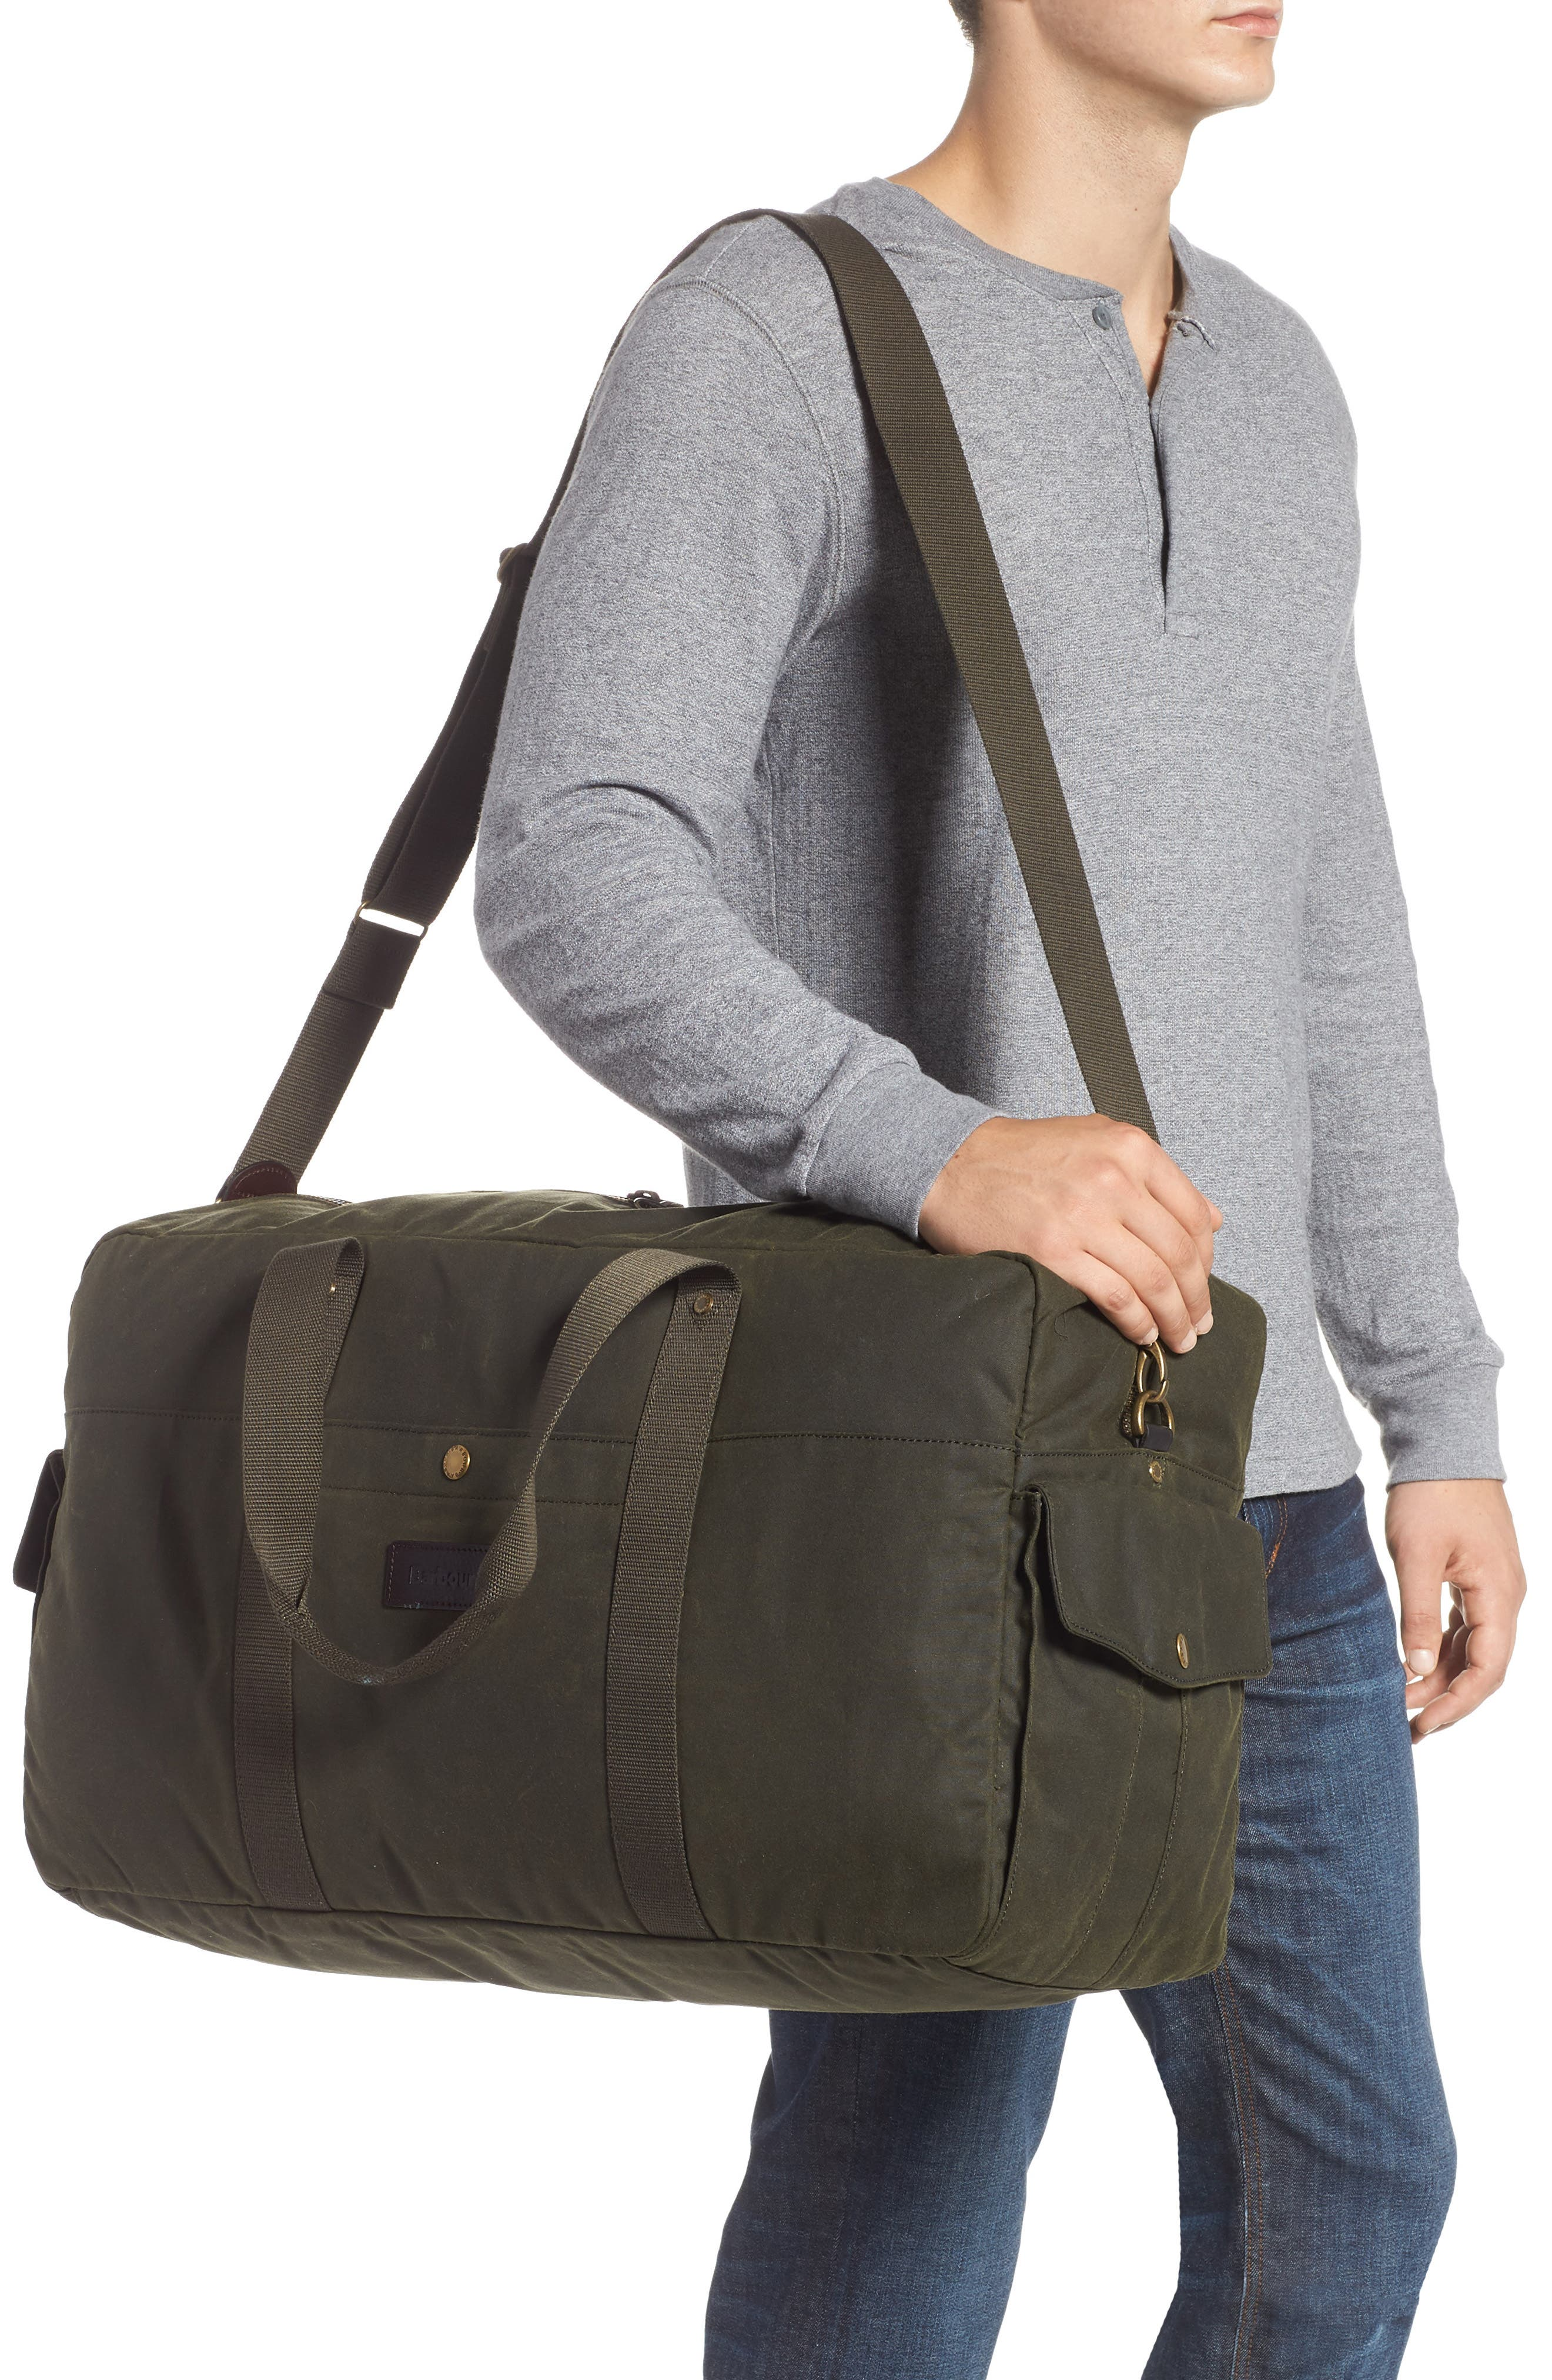 Oakwell Duffel Bag,                             Alternate thumbnail 2, color,                             ARCHIVE OLIVE